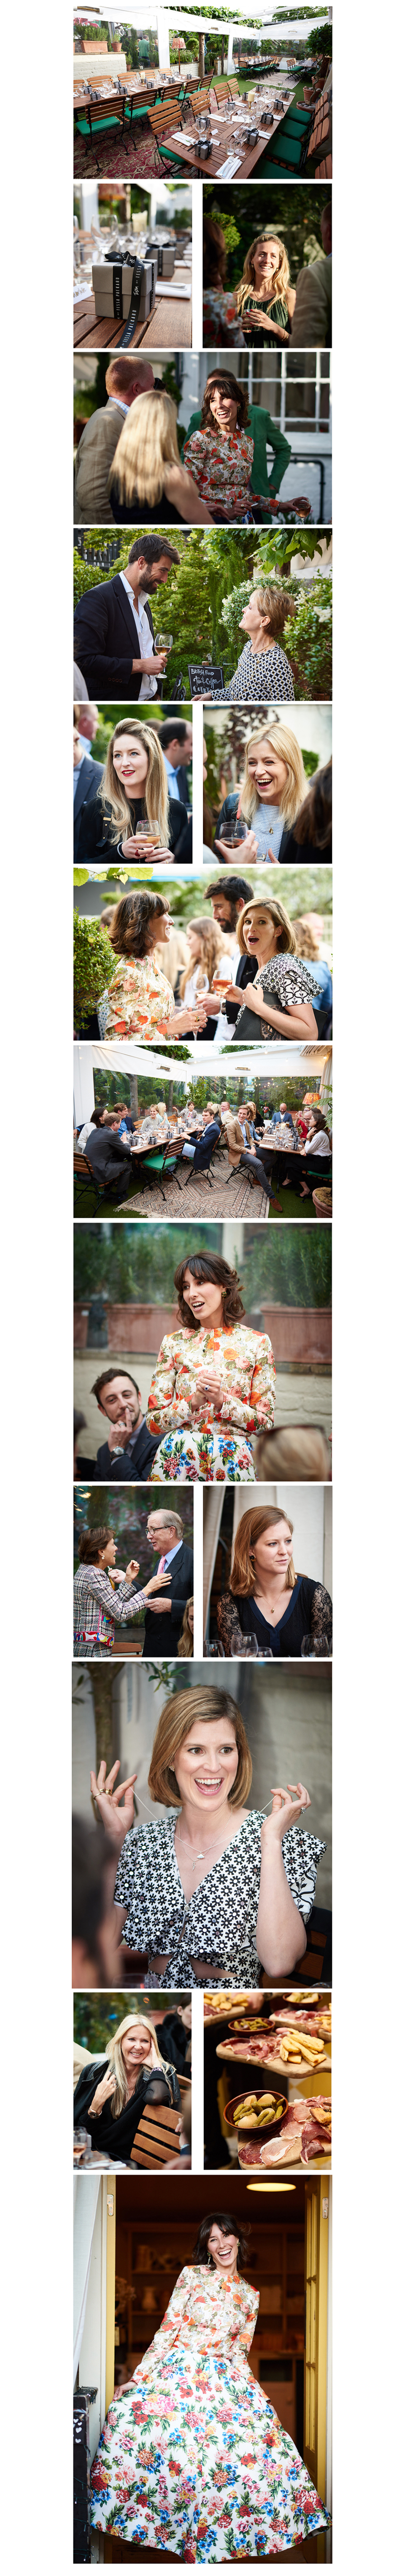 Tessa Packard London Contemporary Fine Jewellery Summer Dinner Party Snap shots